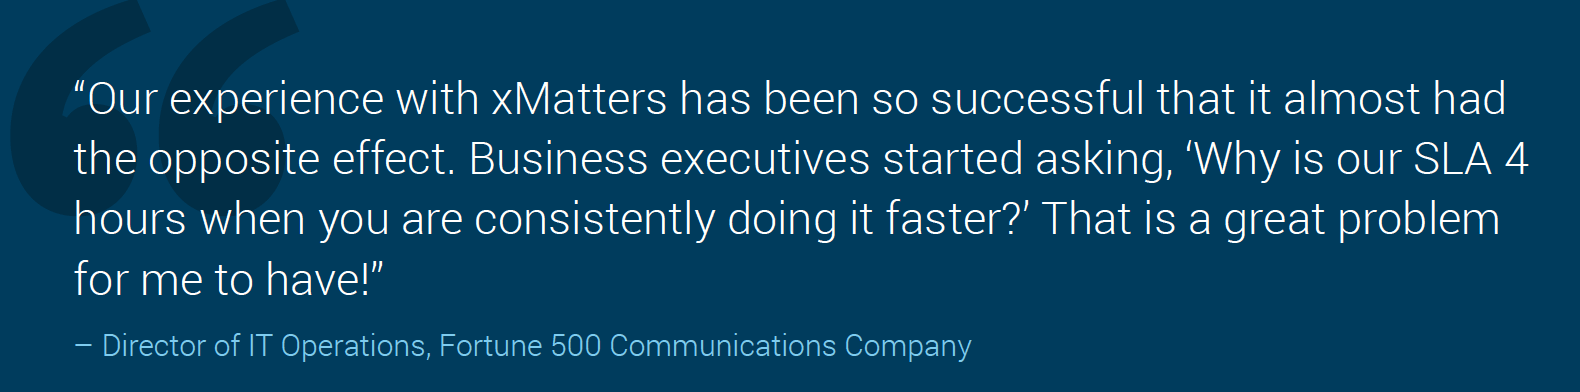 Our experience with xMatters has been so successful that it almost had the opposite effect. Business executives started asking, 'Why is our SLA 4 hours when you are consistently doing it faster?' That is a great problem for me to have!""